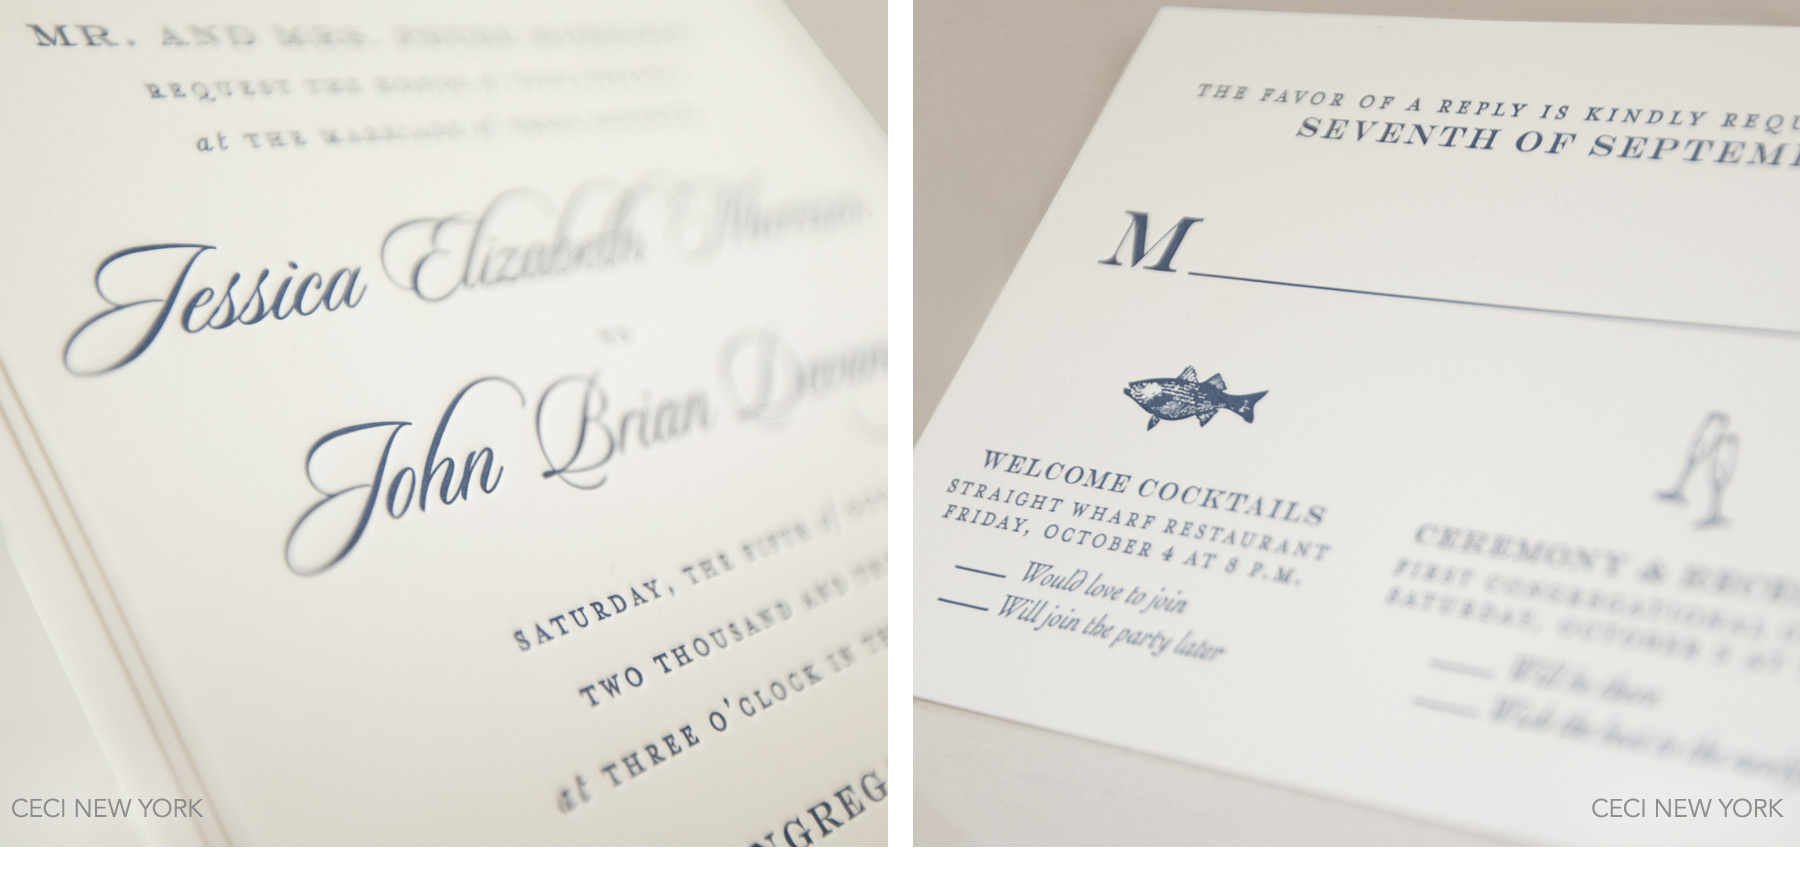 Luxury Wedding Invitations by Ceci New York - Our Muse - Navy Nantucket Wedding - Be inspired by Jessica & John's navy blue Nantucket wedding - Ceci New York Luxury Wedding Invitations - letterpress, navy, blue, gold, nantucket, massachusetts, new england, wedding